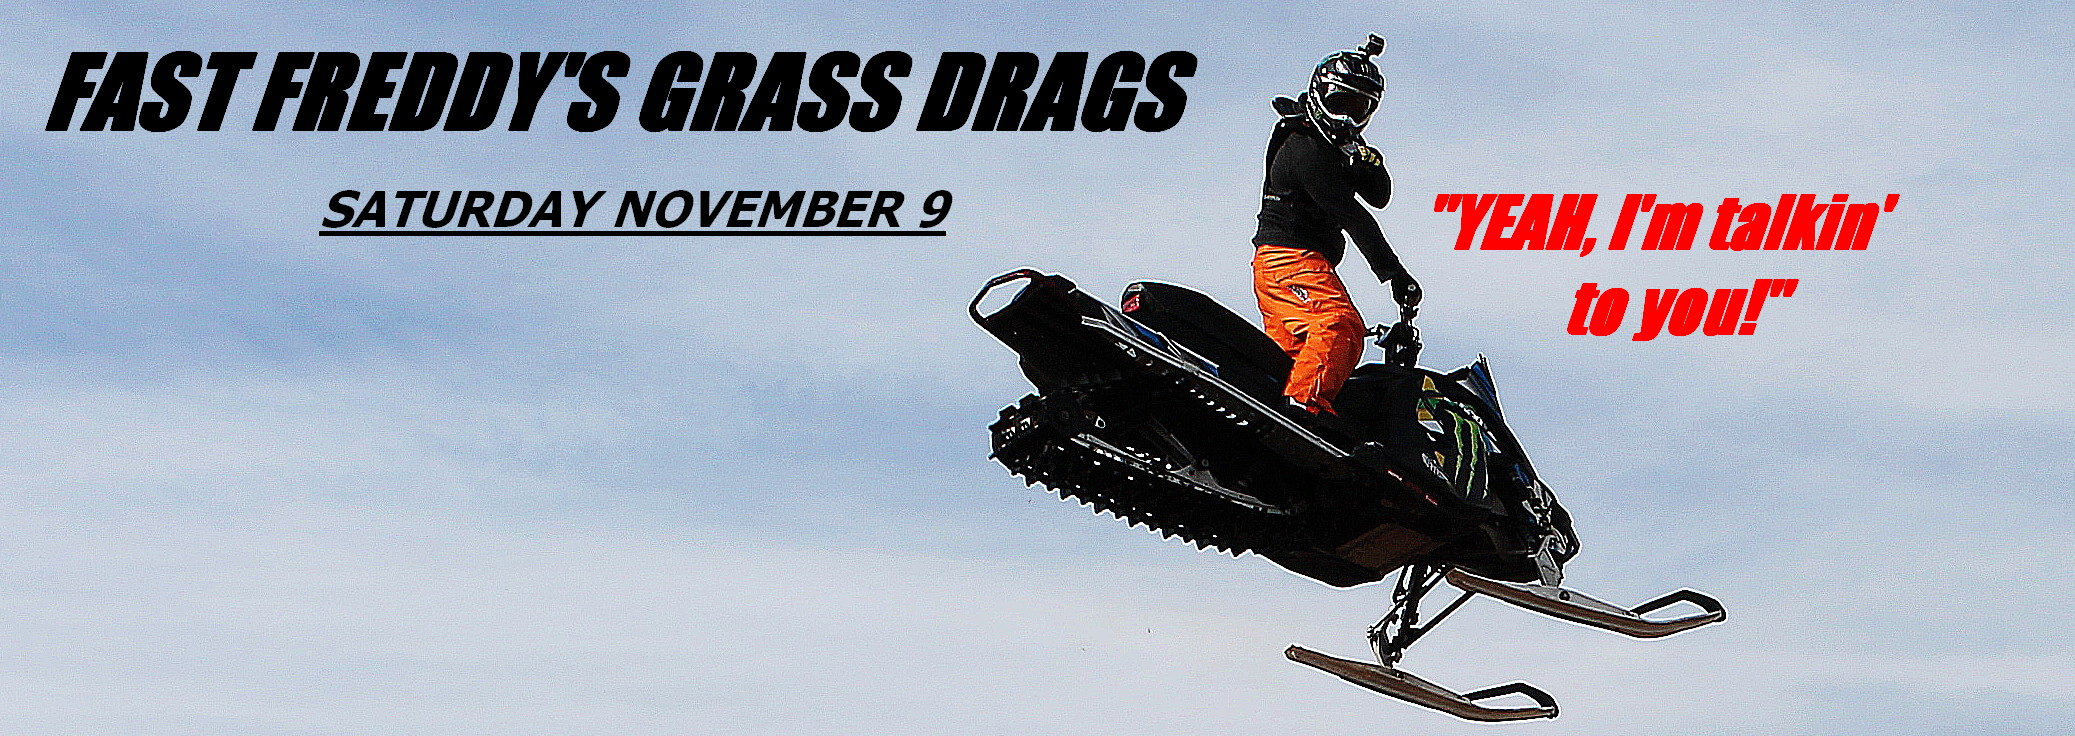 FBcovergrass_drags